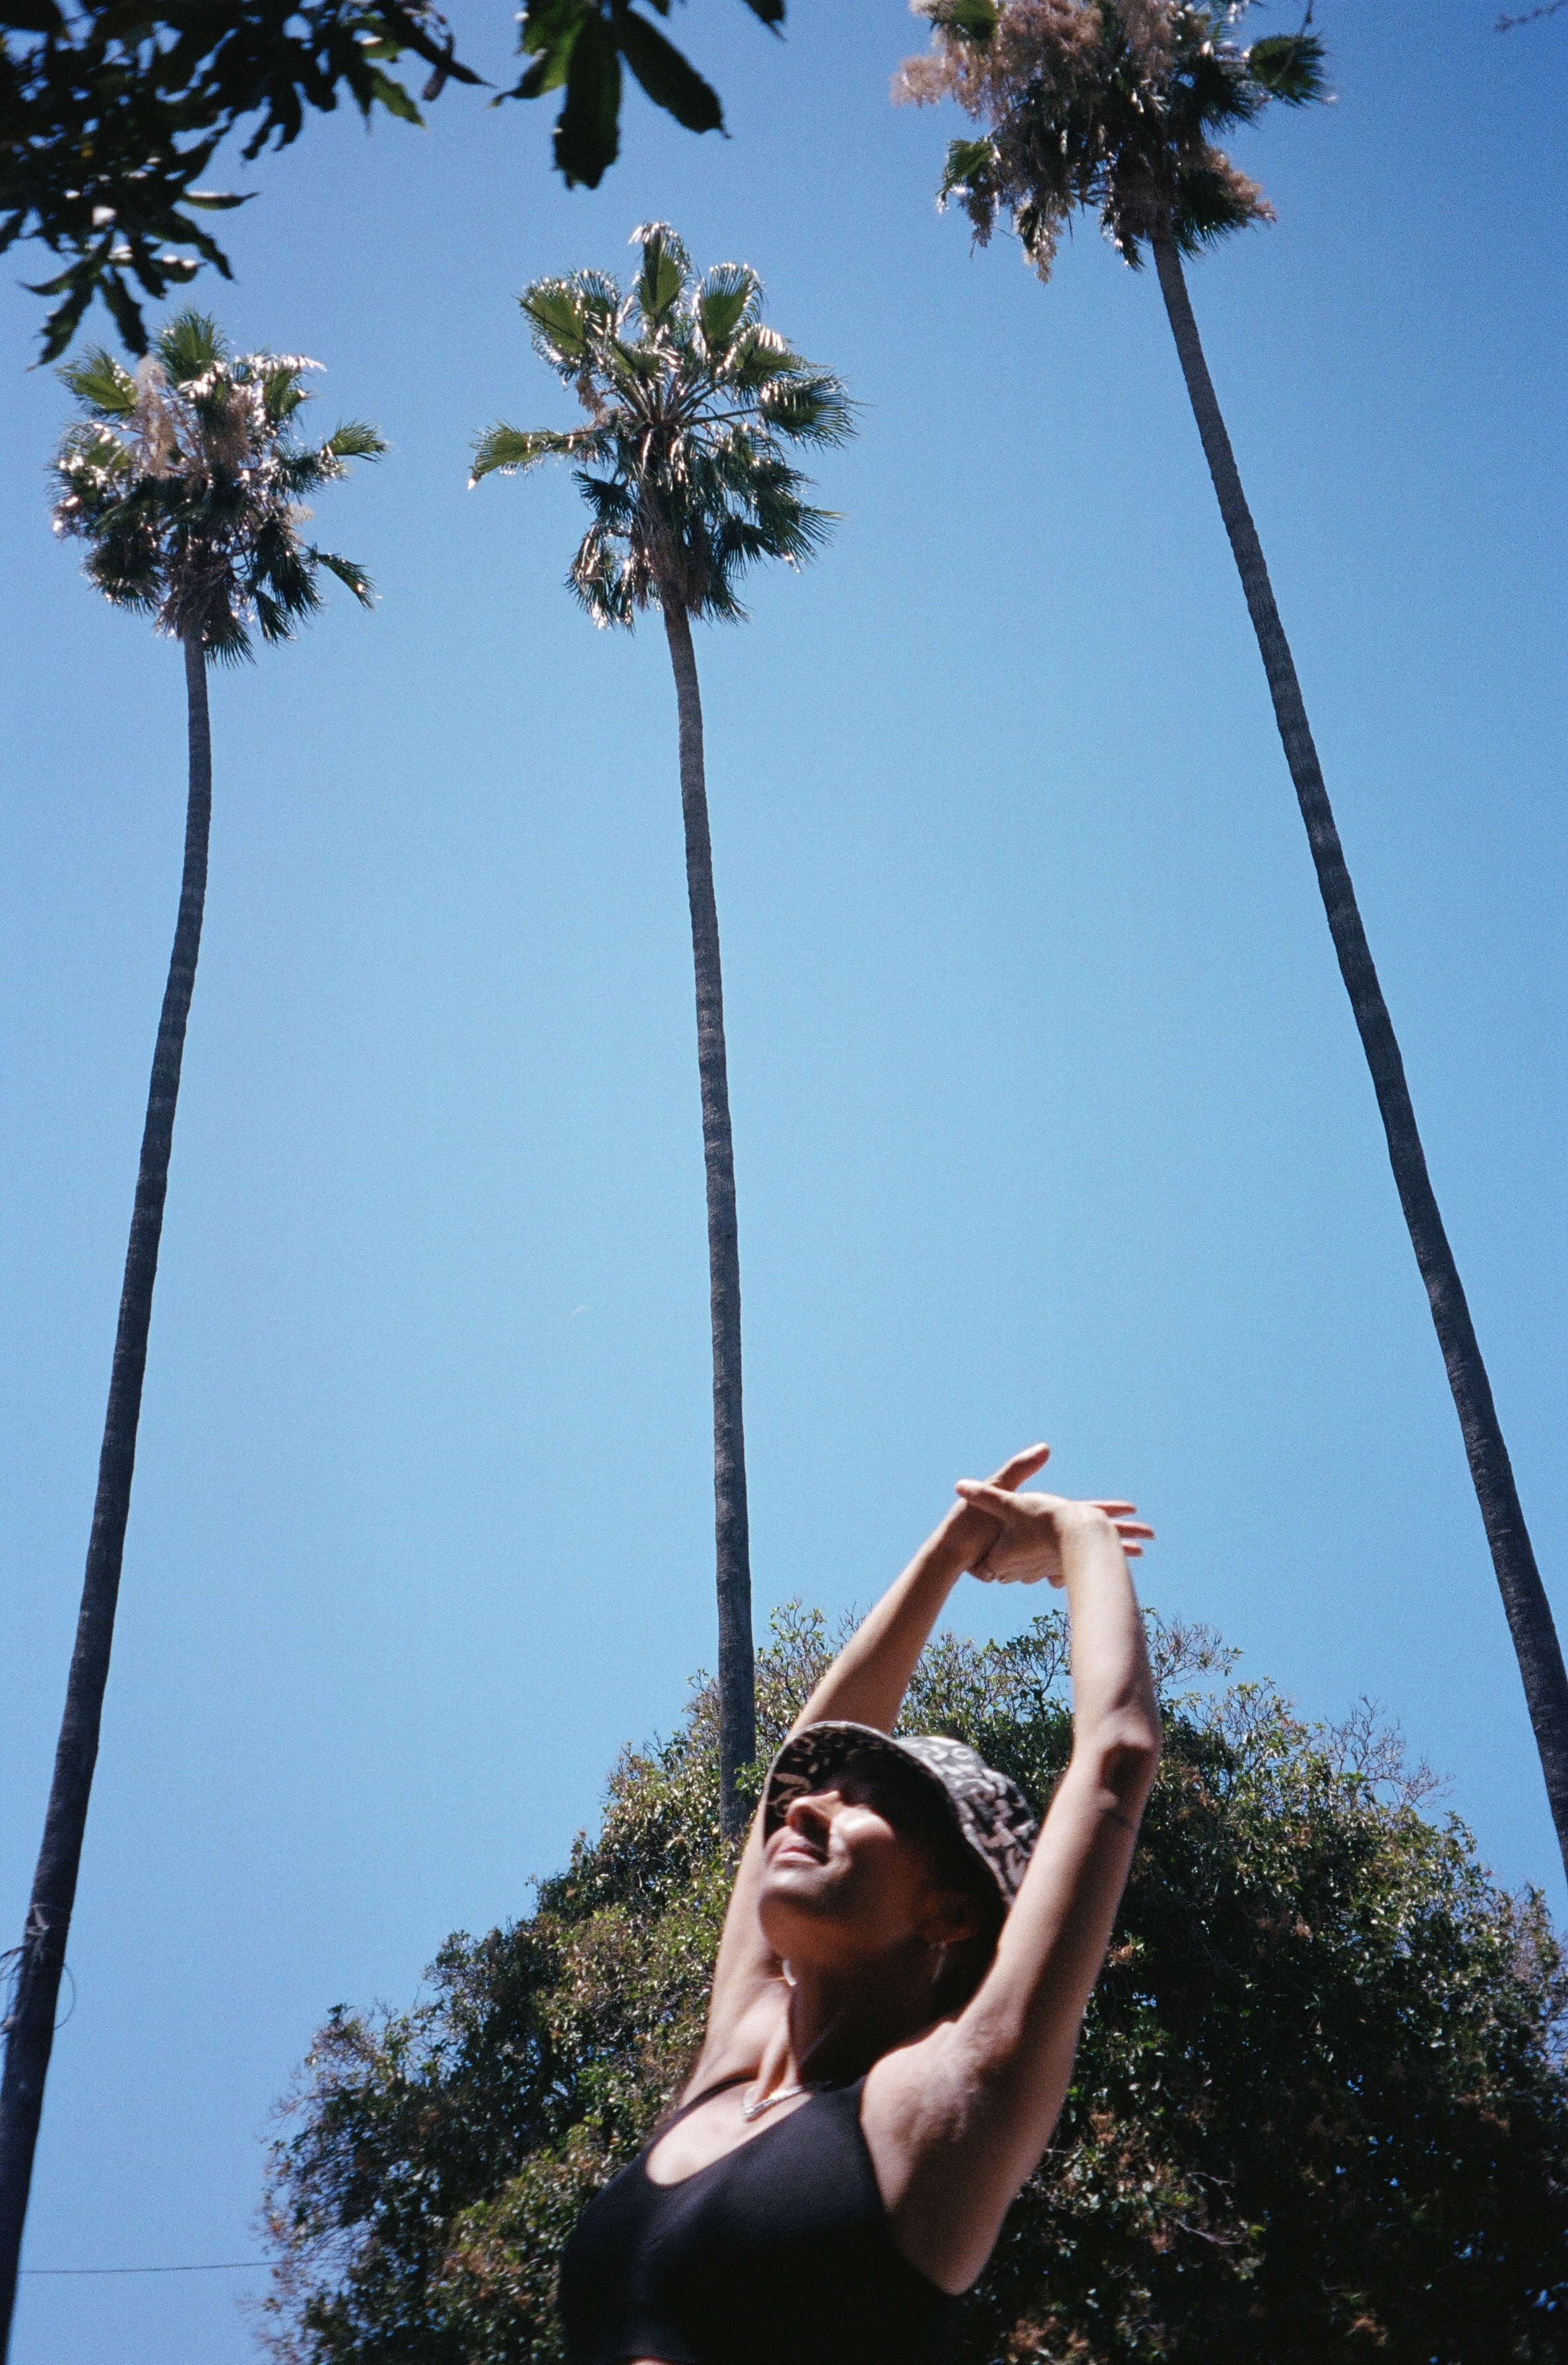 In the morning I wake up to baby blue skies feeling thankful and I head to nearby Hollenbeck Park for some exercise.